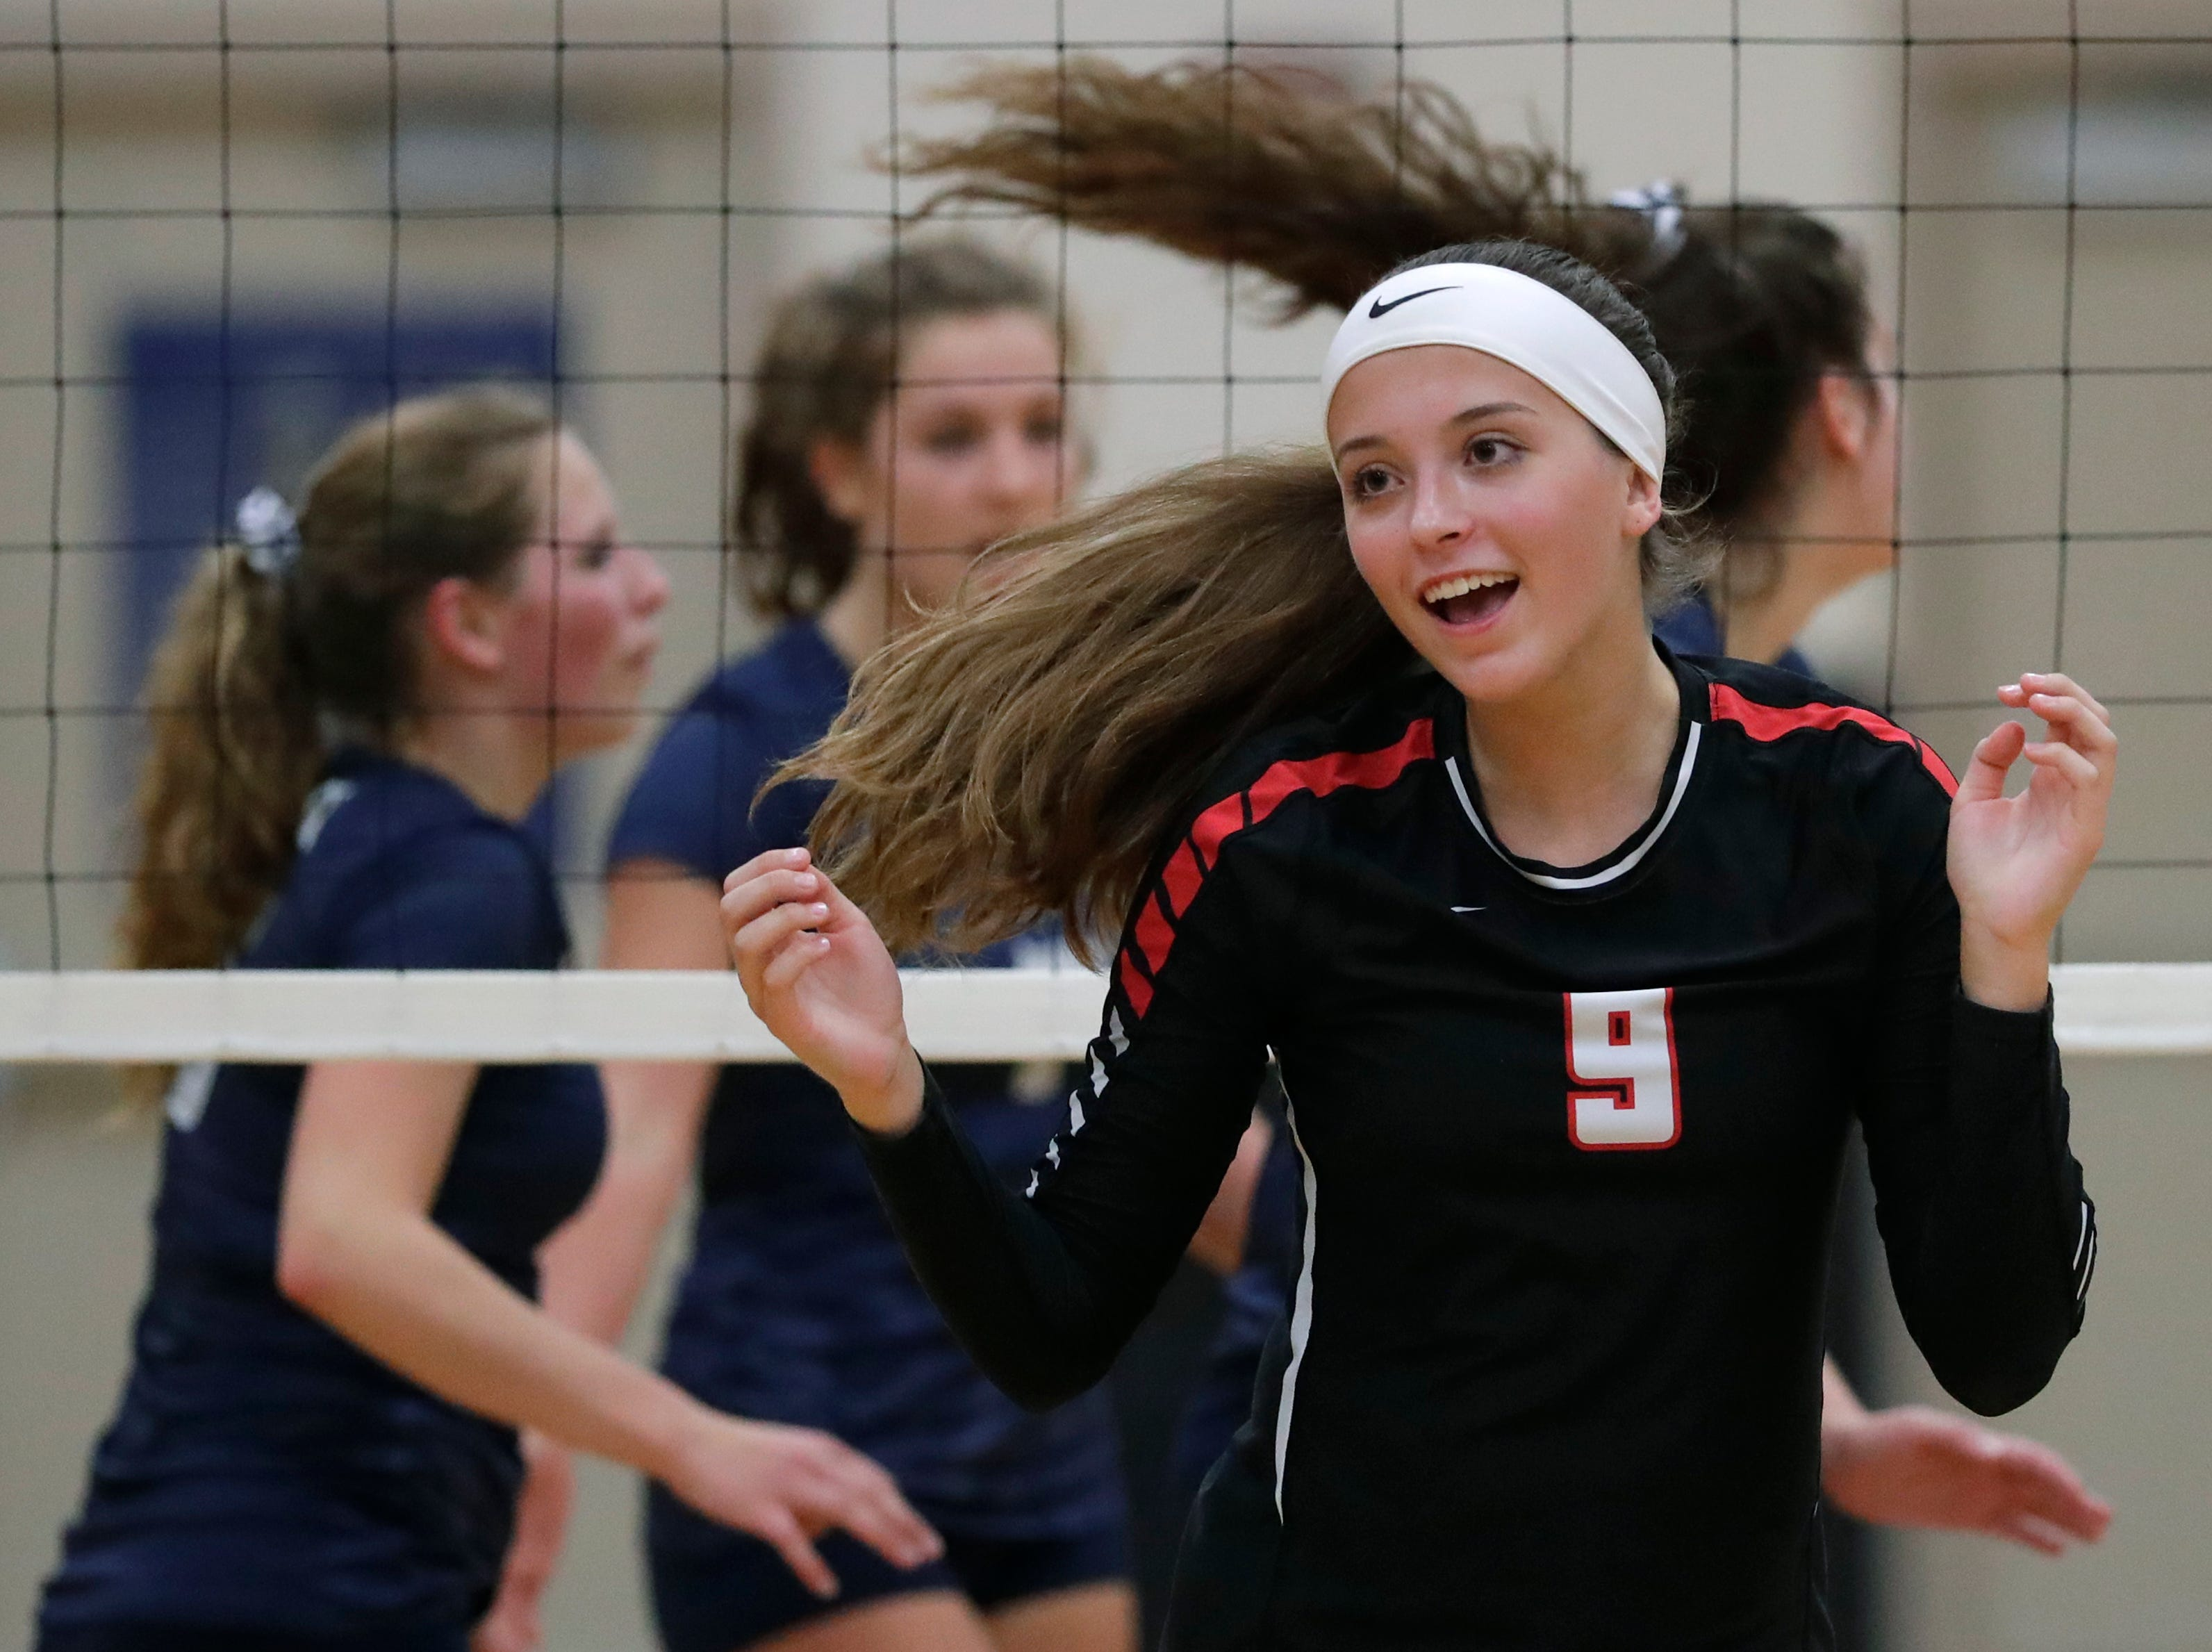 New London High School's Mackenzie Fischer (9) celebrates winning a point against Xavier High School during their girls volleyball match Thursday, Sept. 13, 2018, in Appleton, Wis. 